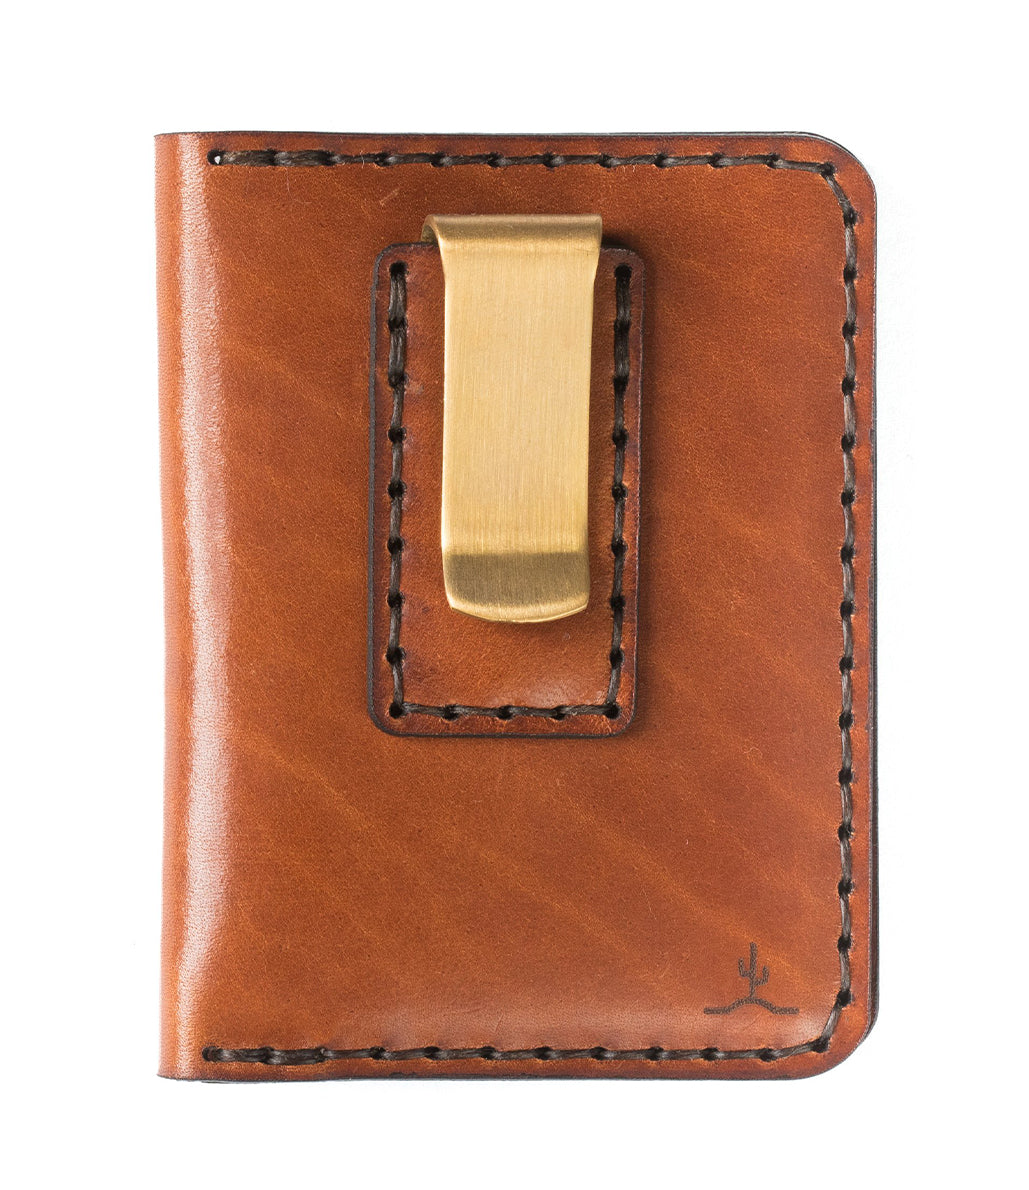 No. 14 Wallet with Money Clip - 4 week delay